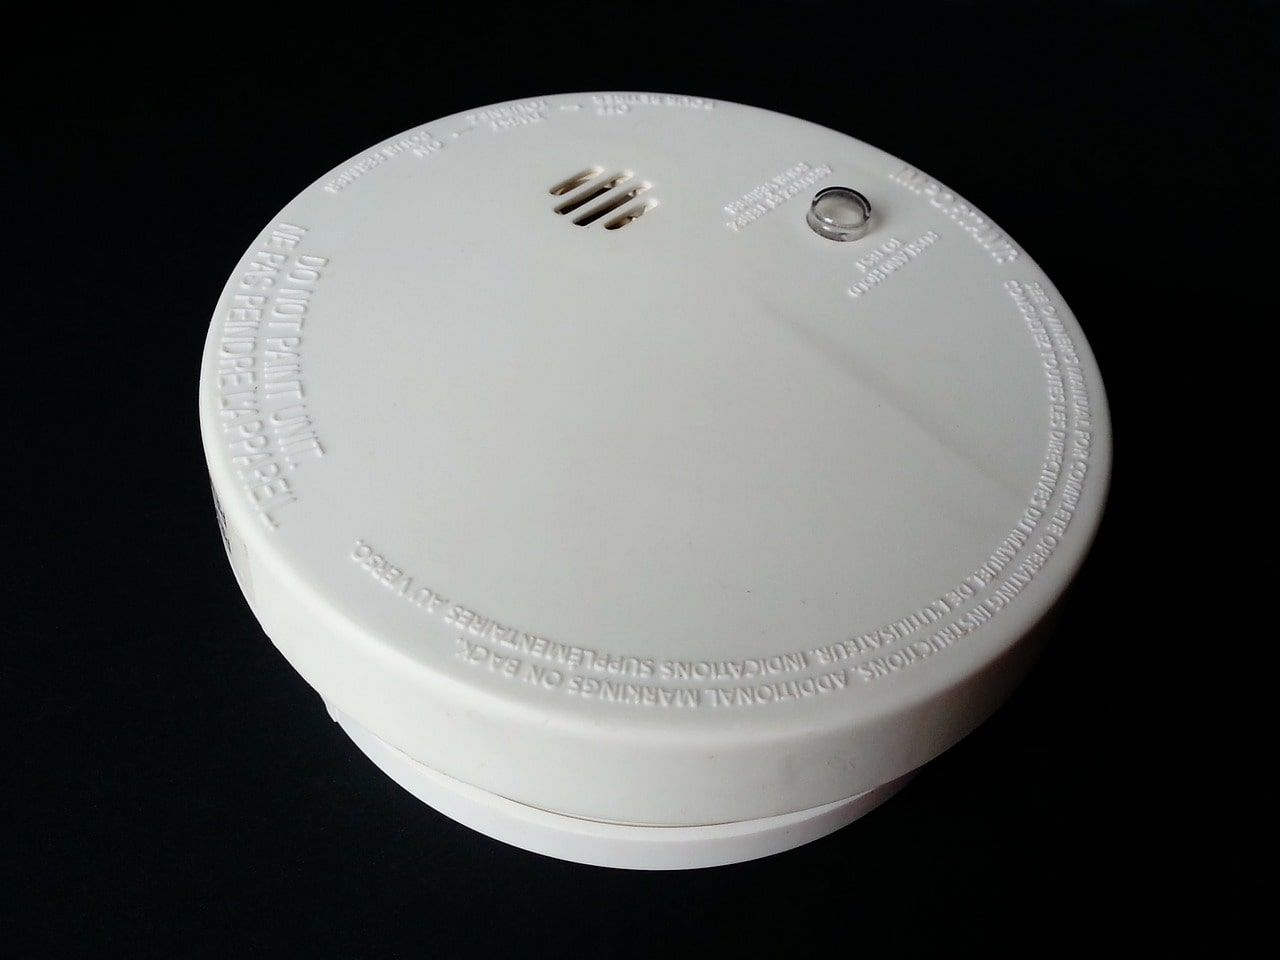 Smoke alarm hush button